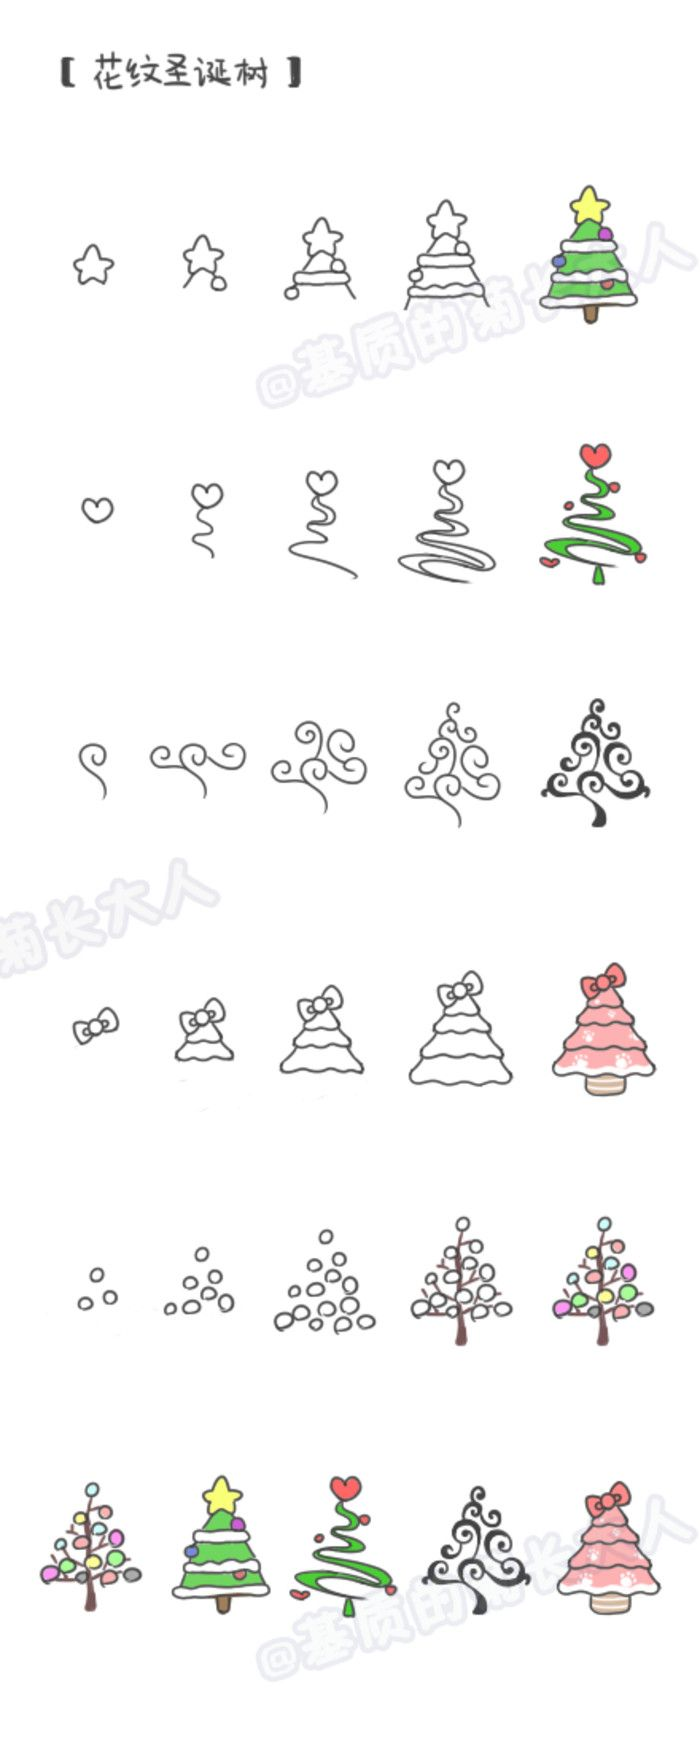 Uncategorized Christmas Drawings Easy 124 best drawing images on pinterest draw and drawings christmas tree doodles how to diy journaling bujo